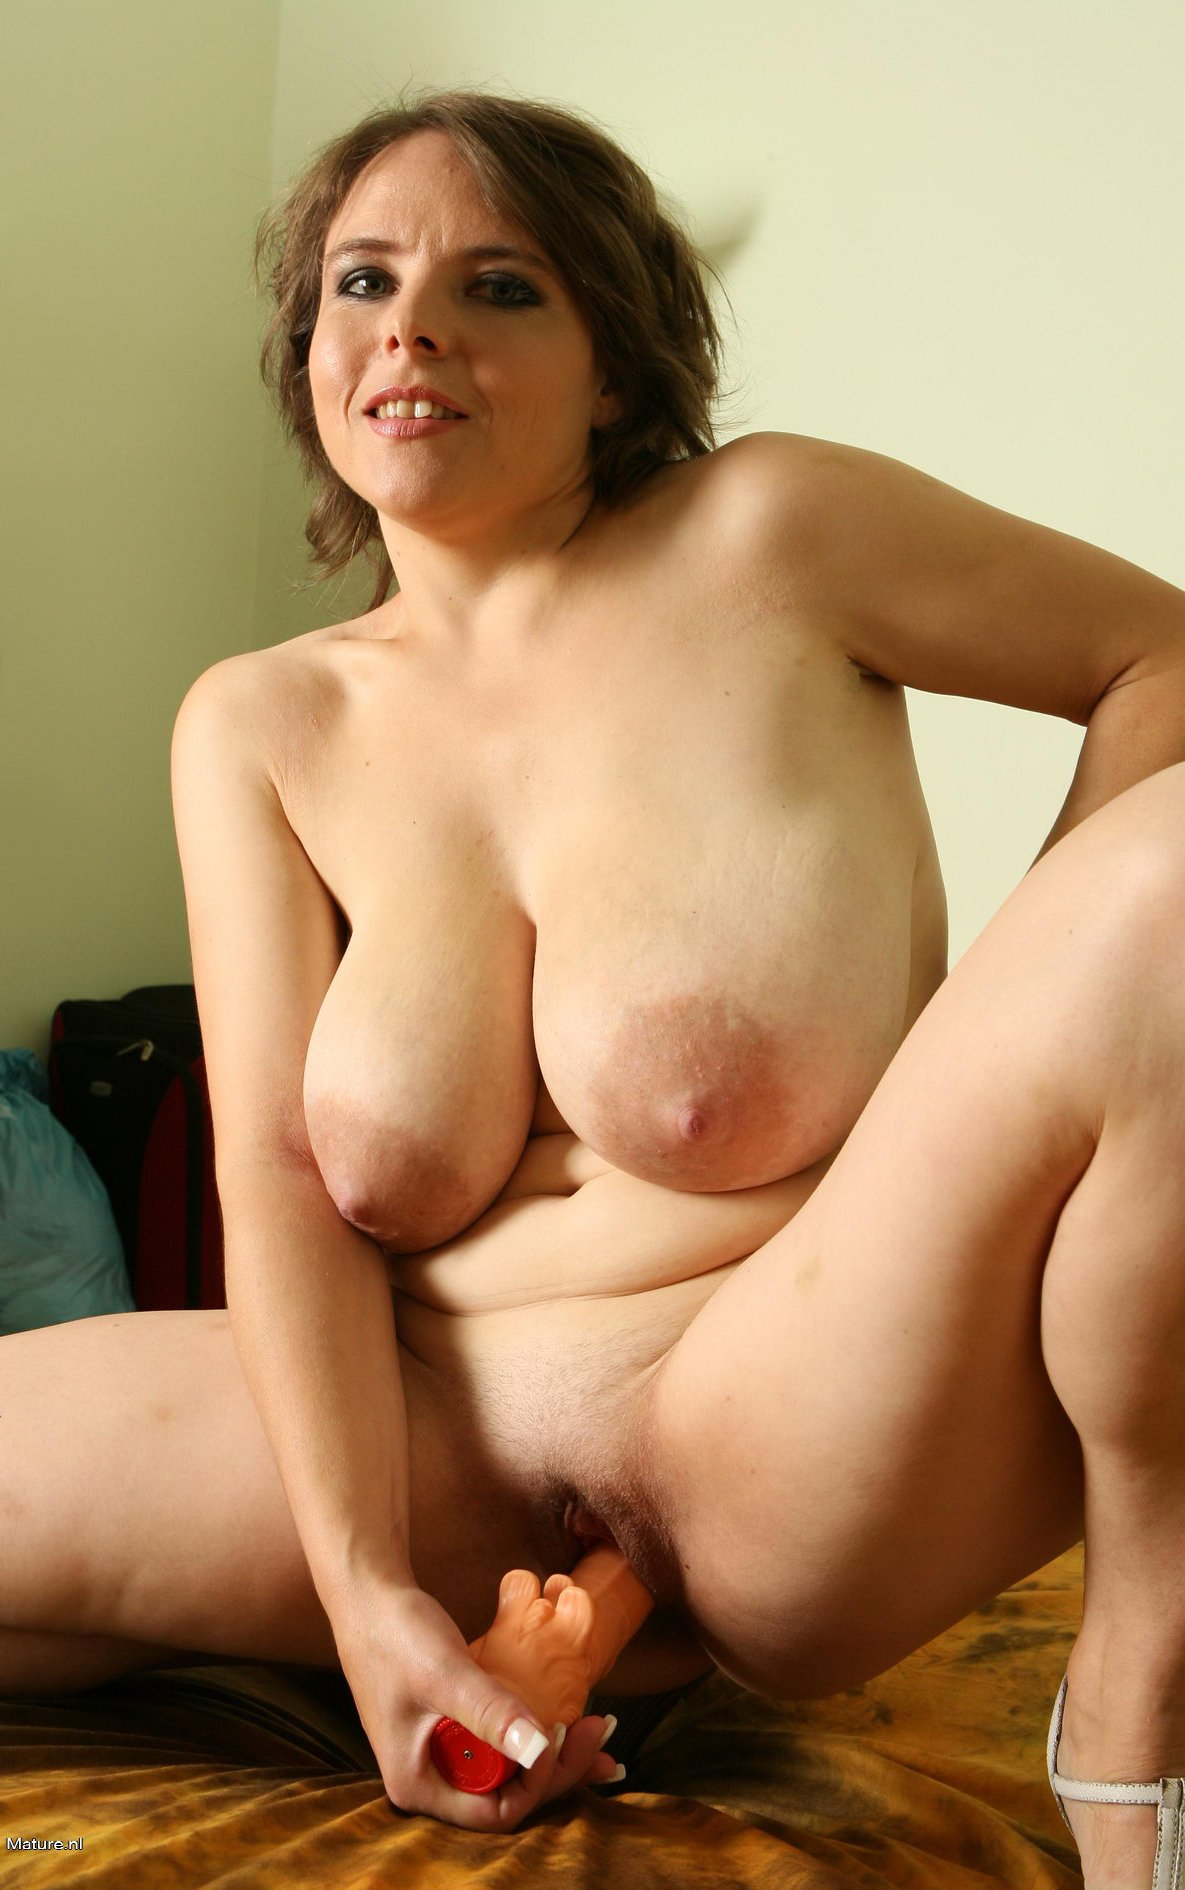 Big titted housewife playing with herself - Image 1